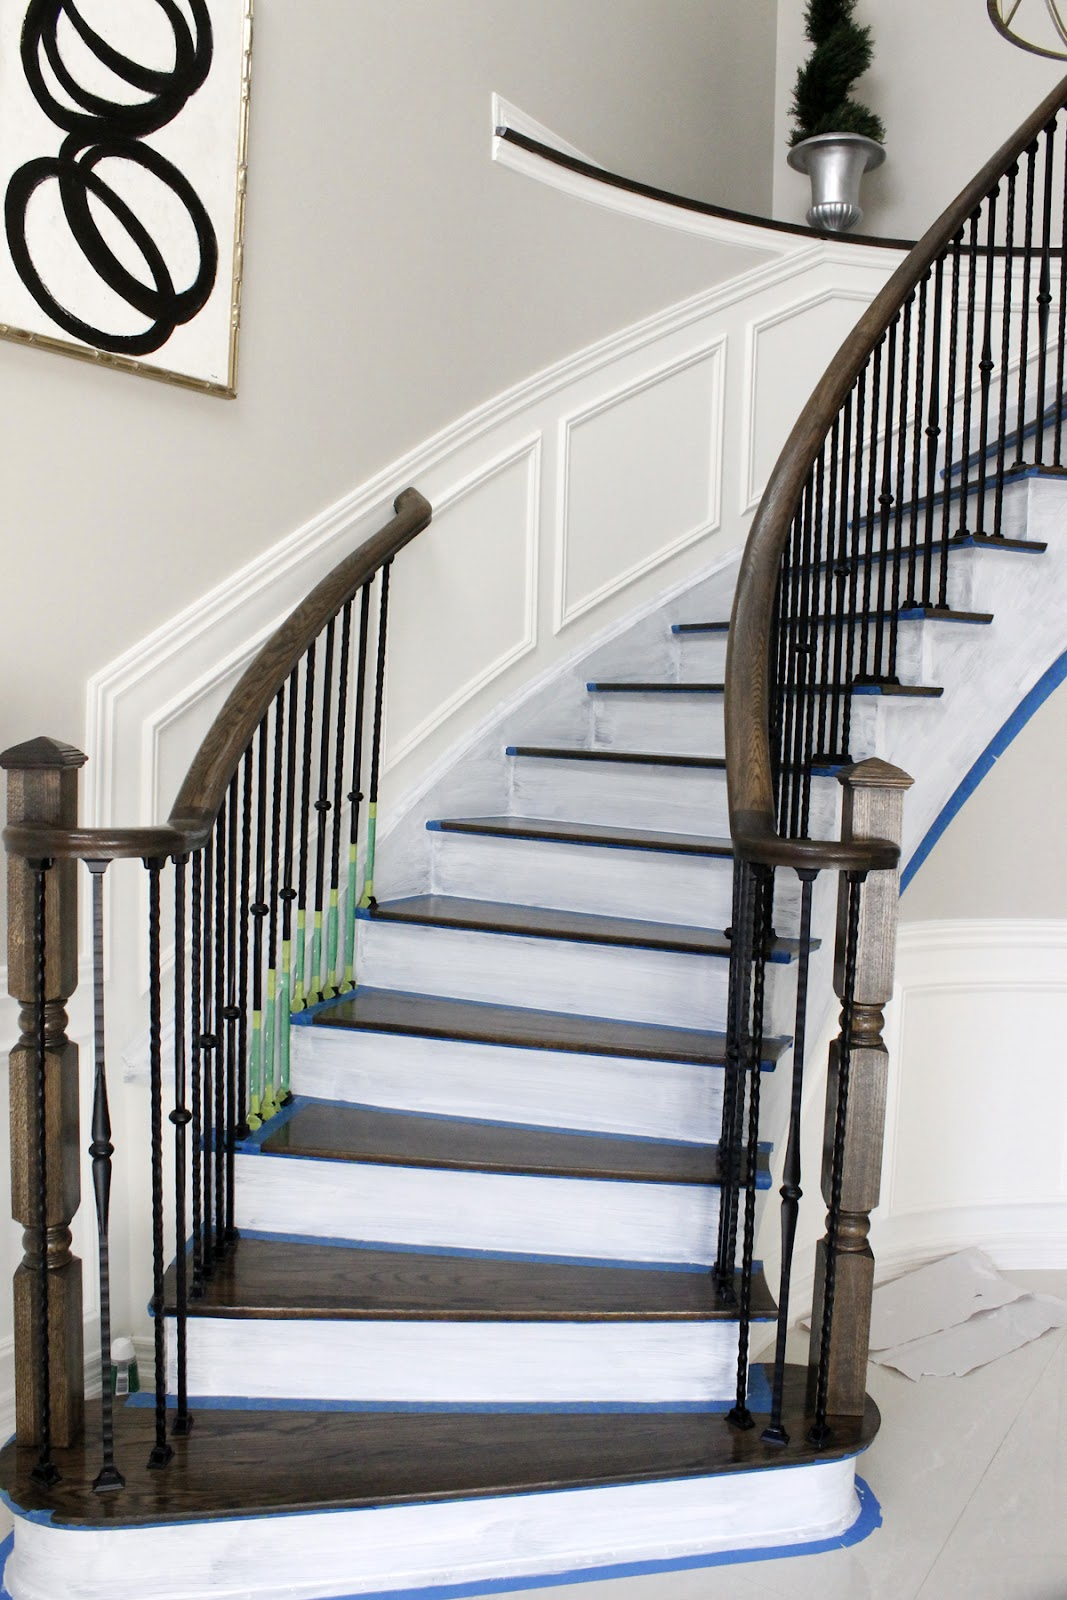 My Foyer Staircase Reveal : Am dolce vita painted staircase reveal